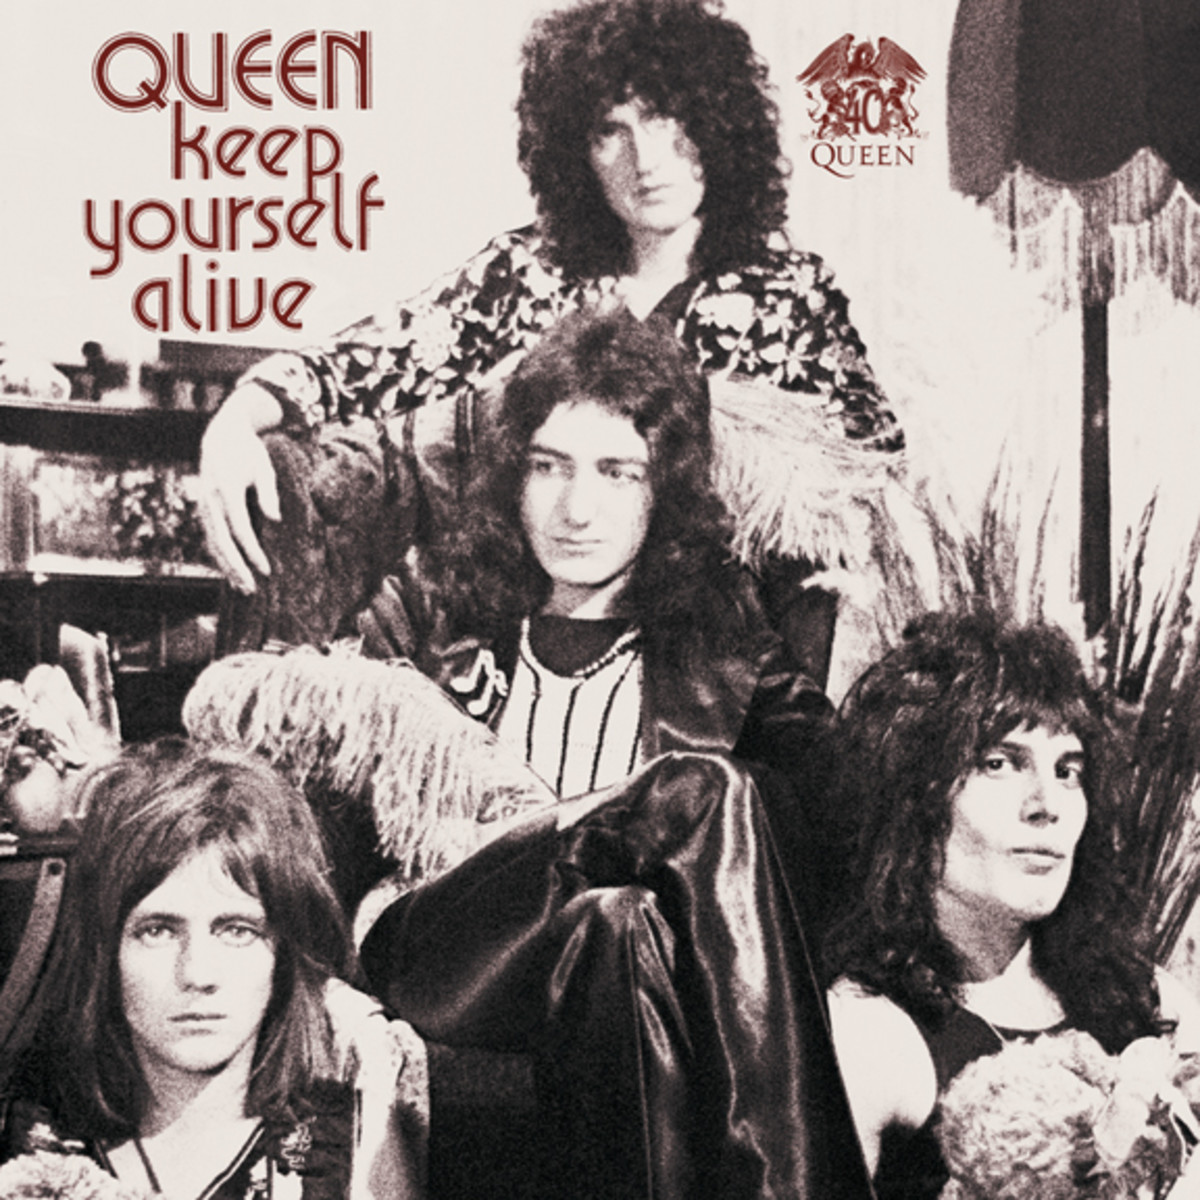 Queen Keep Yourself Alive 7 inch single